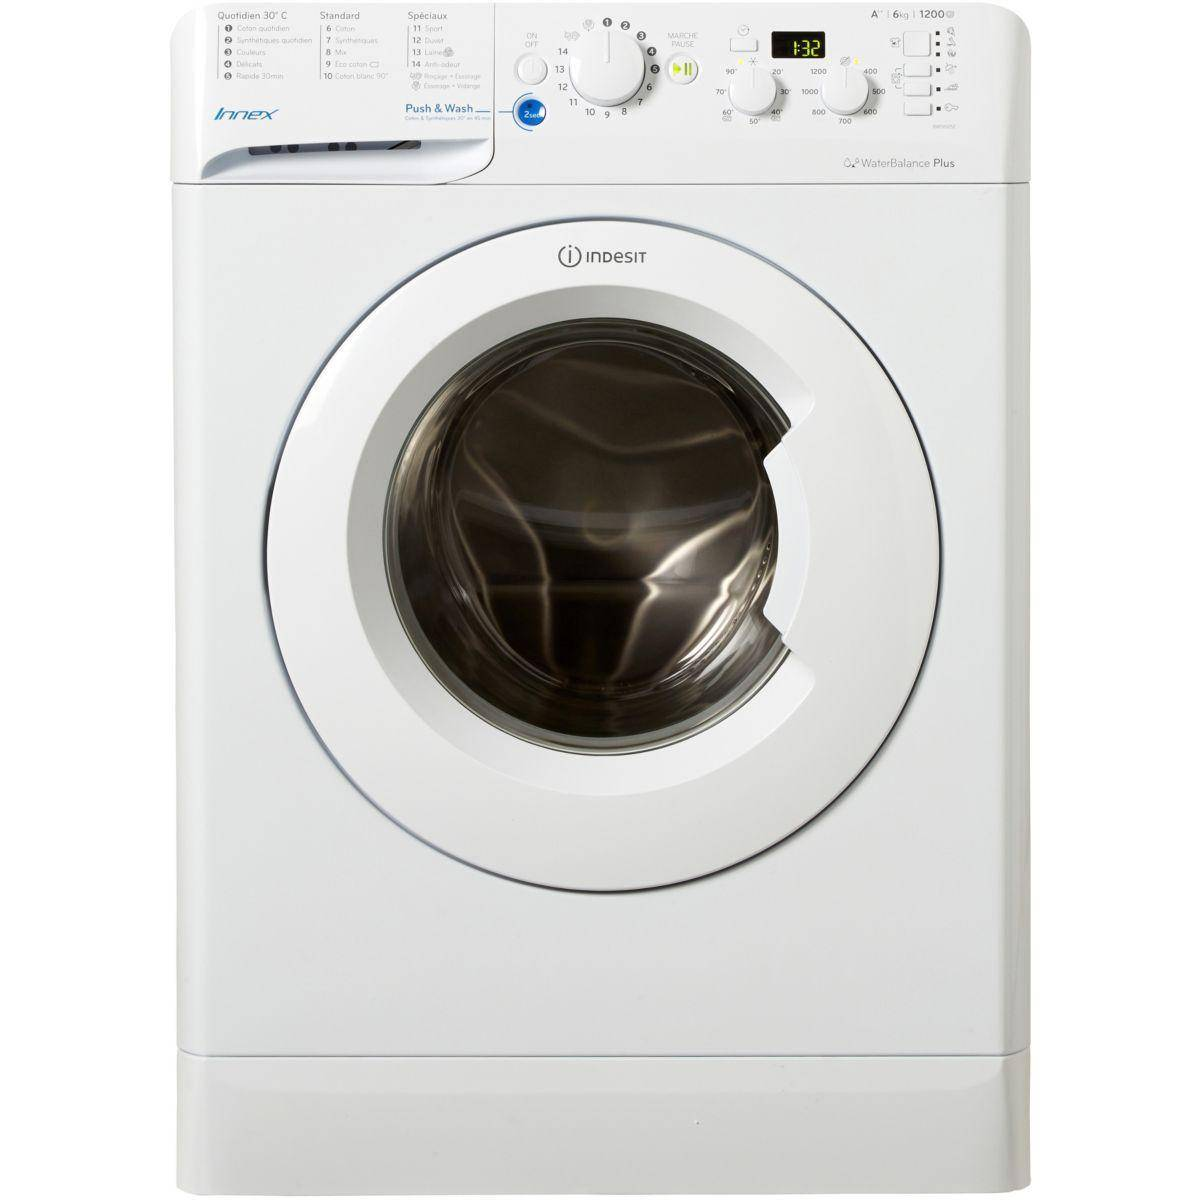 Indesit Lave-linge frontal INDESIT BWD 61252 W FR Reconditionné à neuf